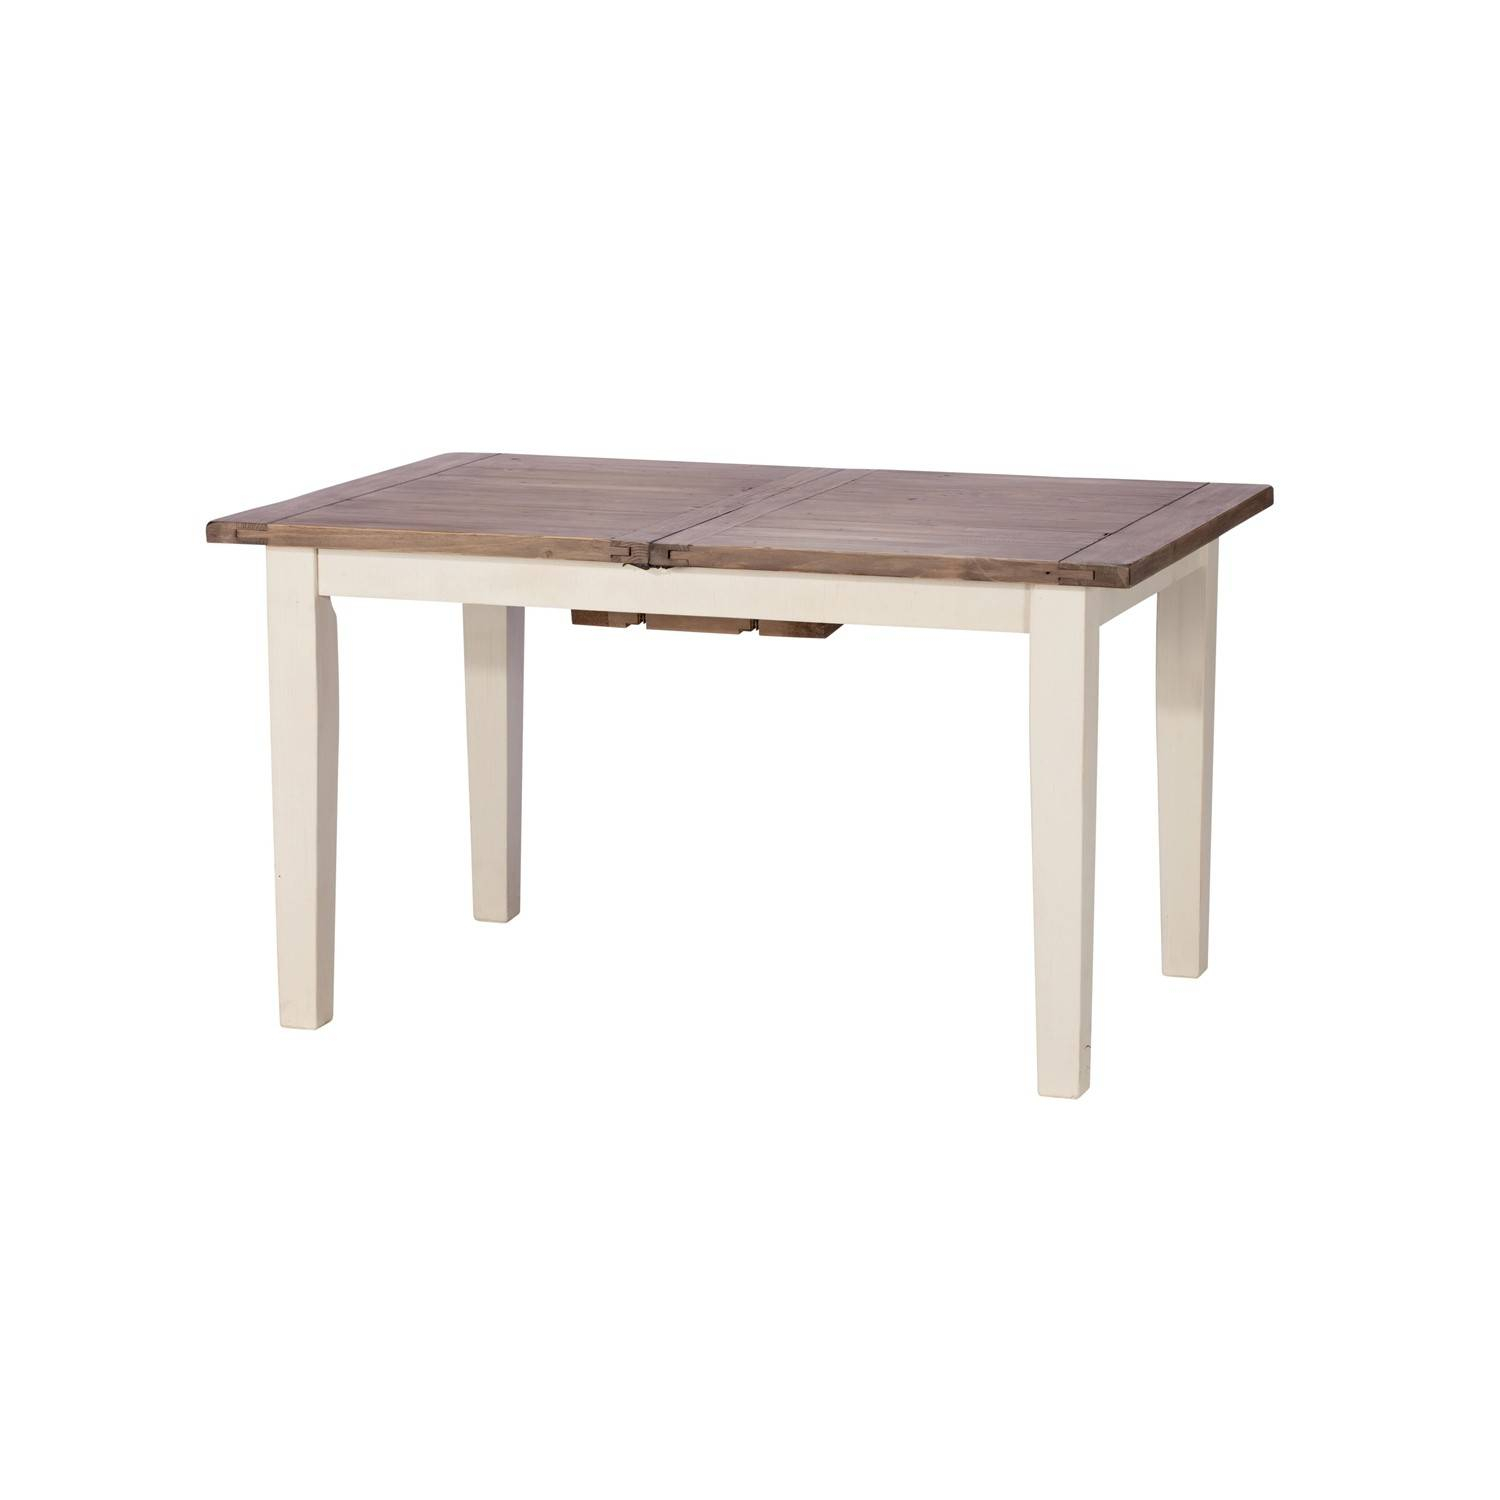 Remarkable Reclaimed Timber Extending Dining Table Banks For Most Popular Hart Reclaimed Wood Extending Dining Tables (Image 22 of 25)